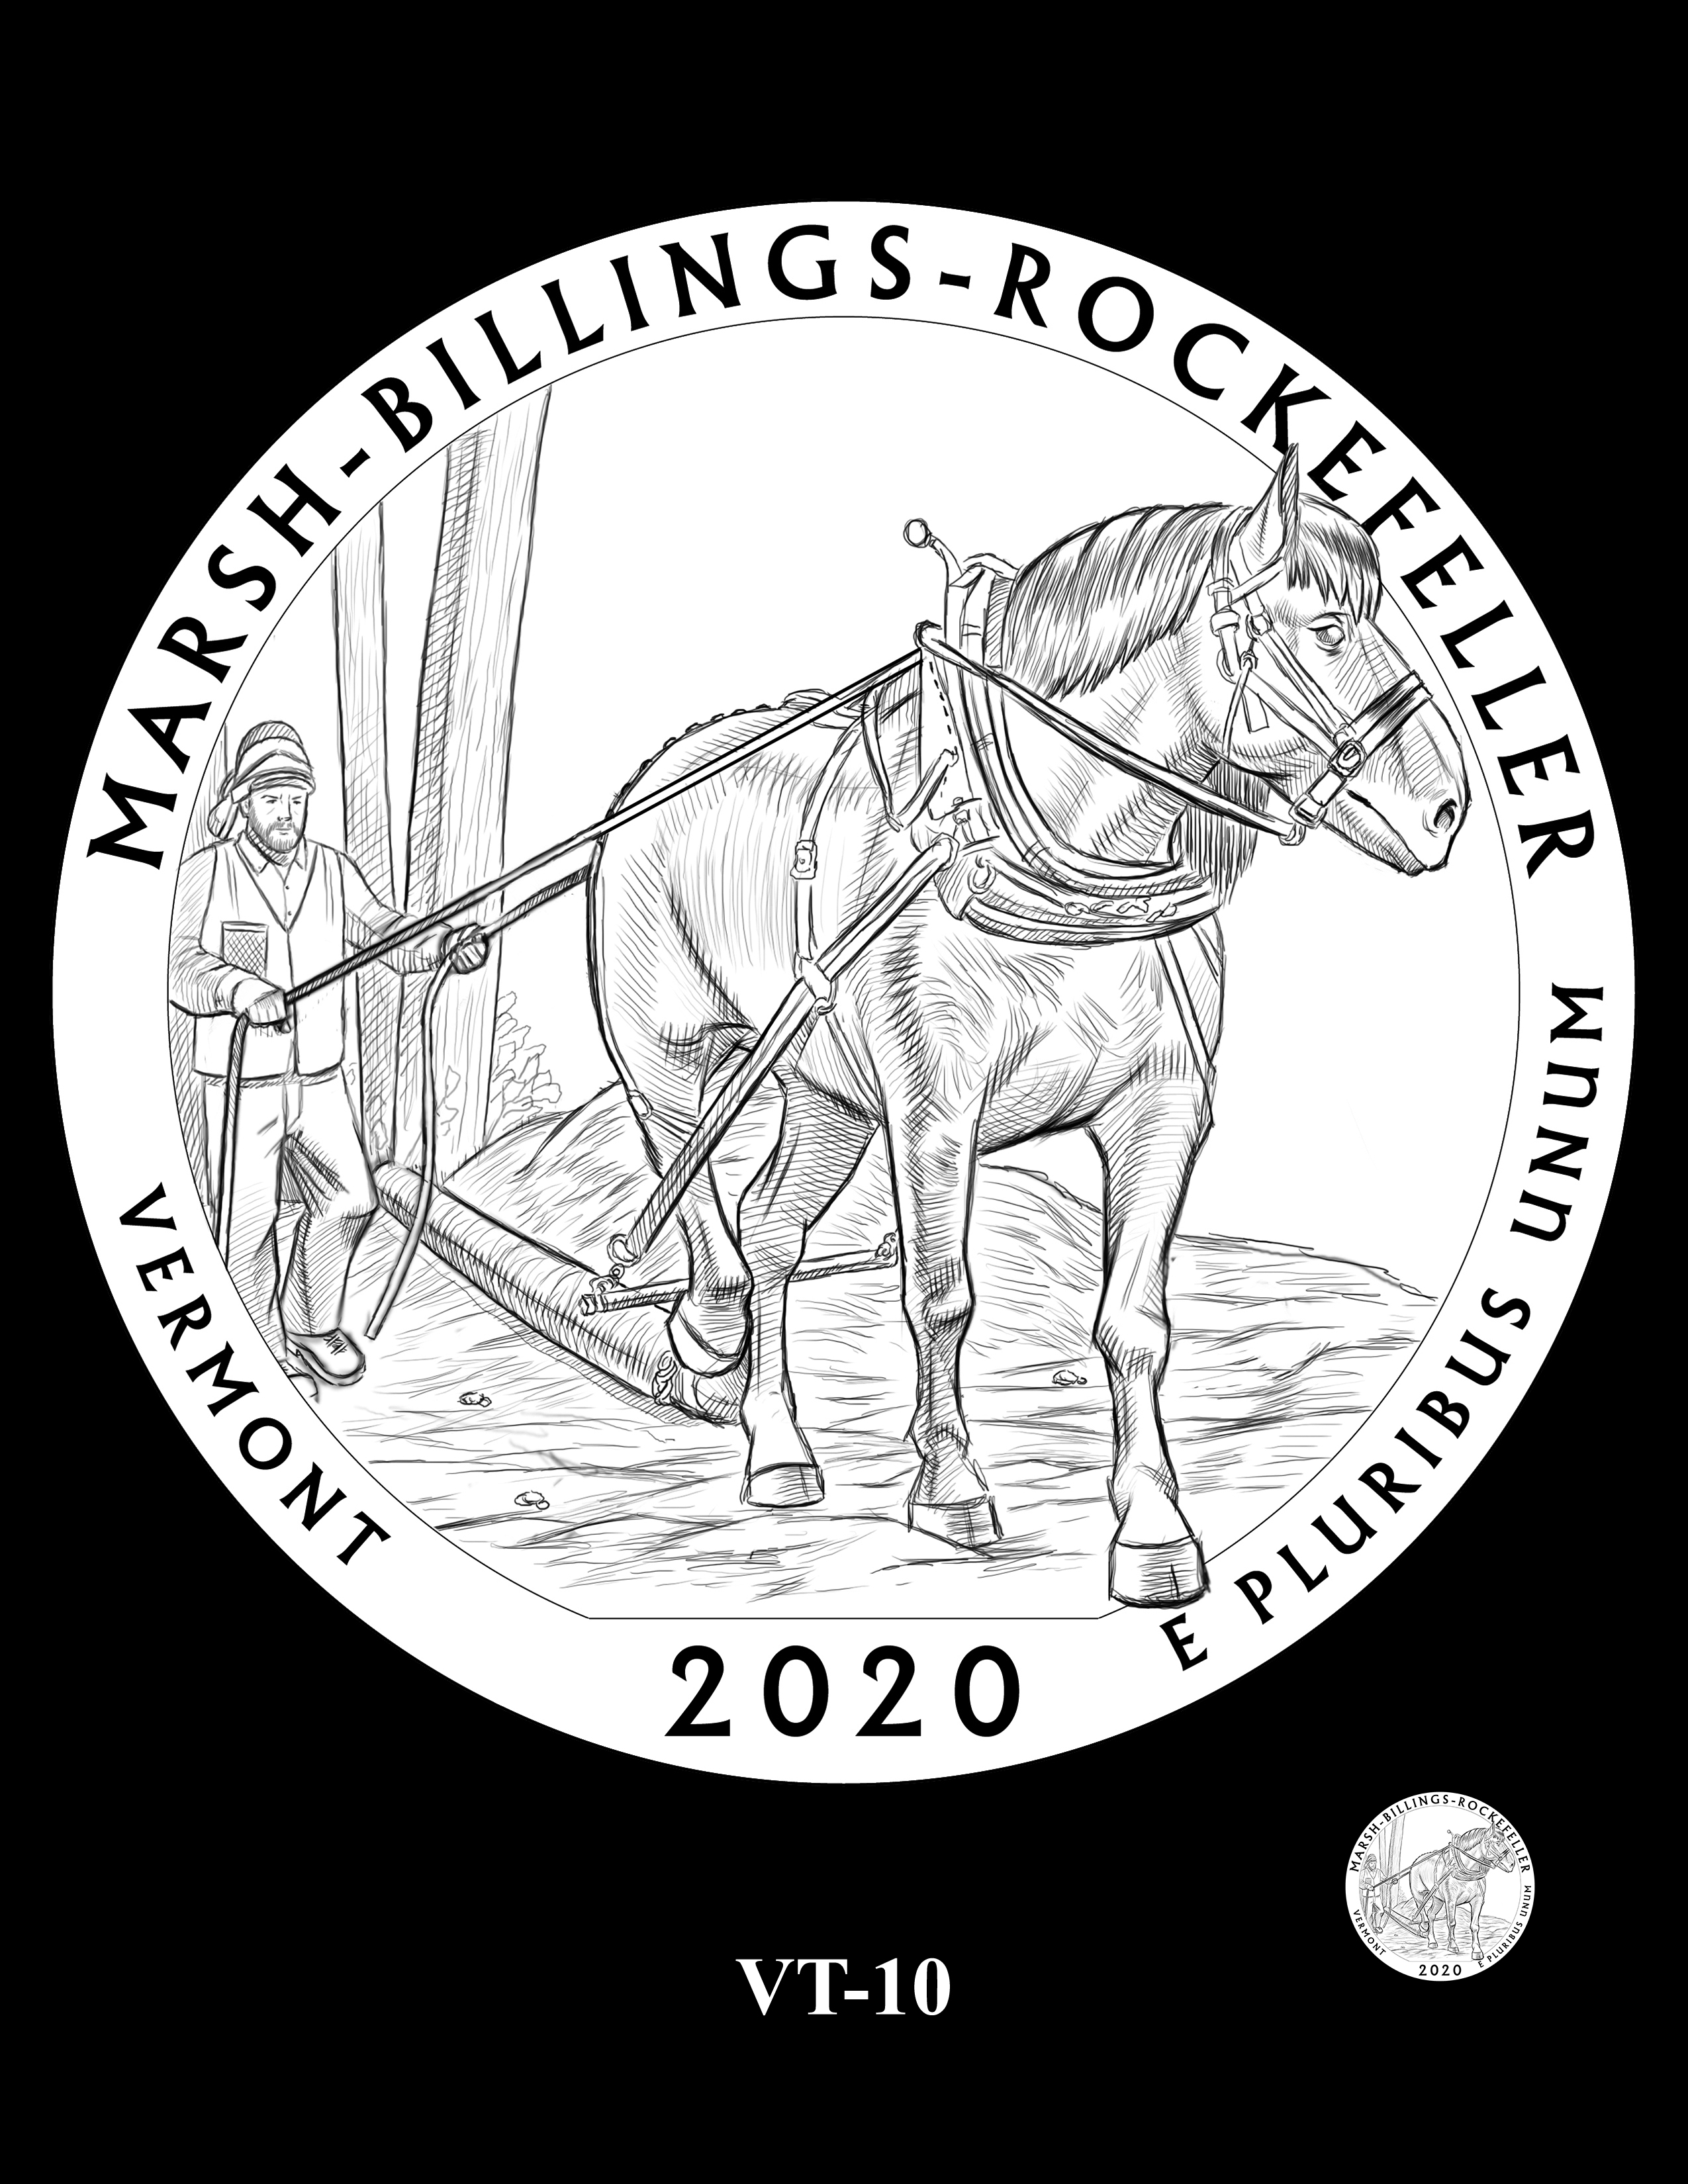 VT-10 -- 2020 America the Beautiful Quarters® Program